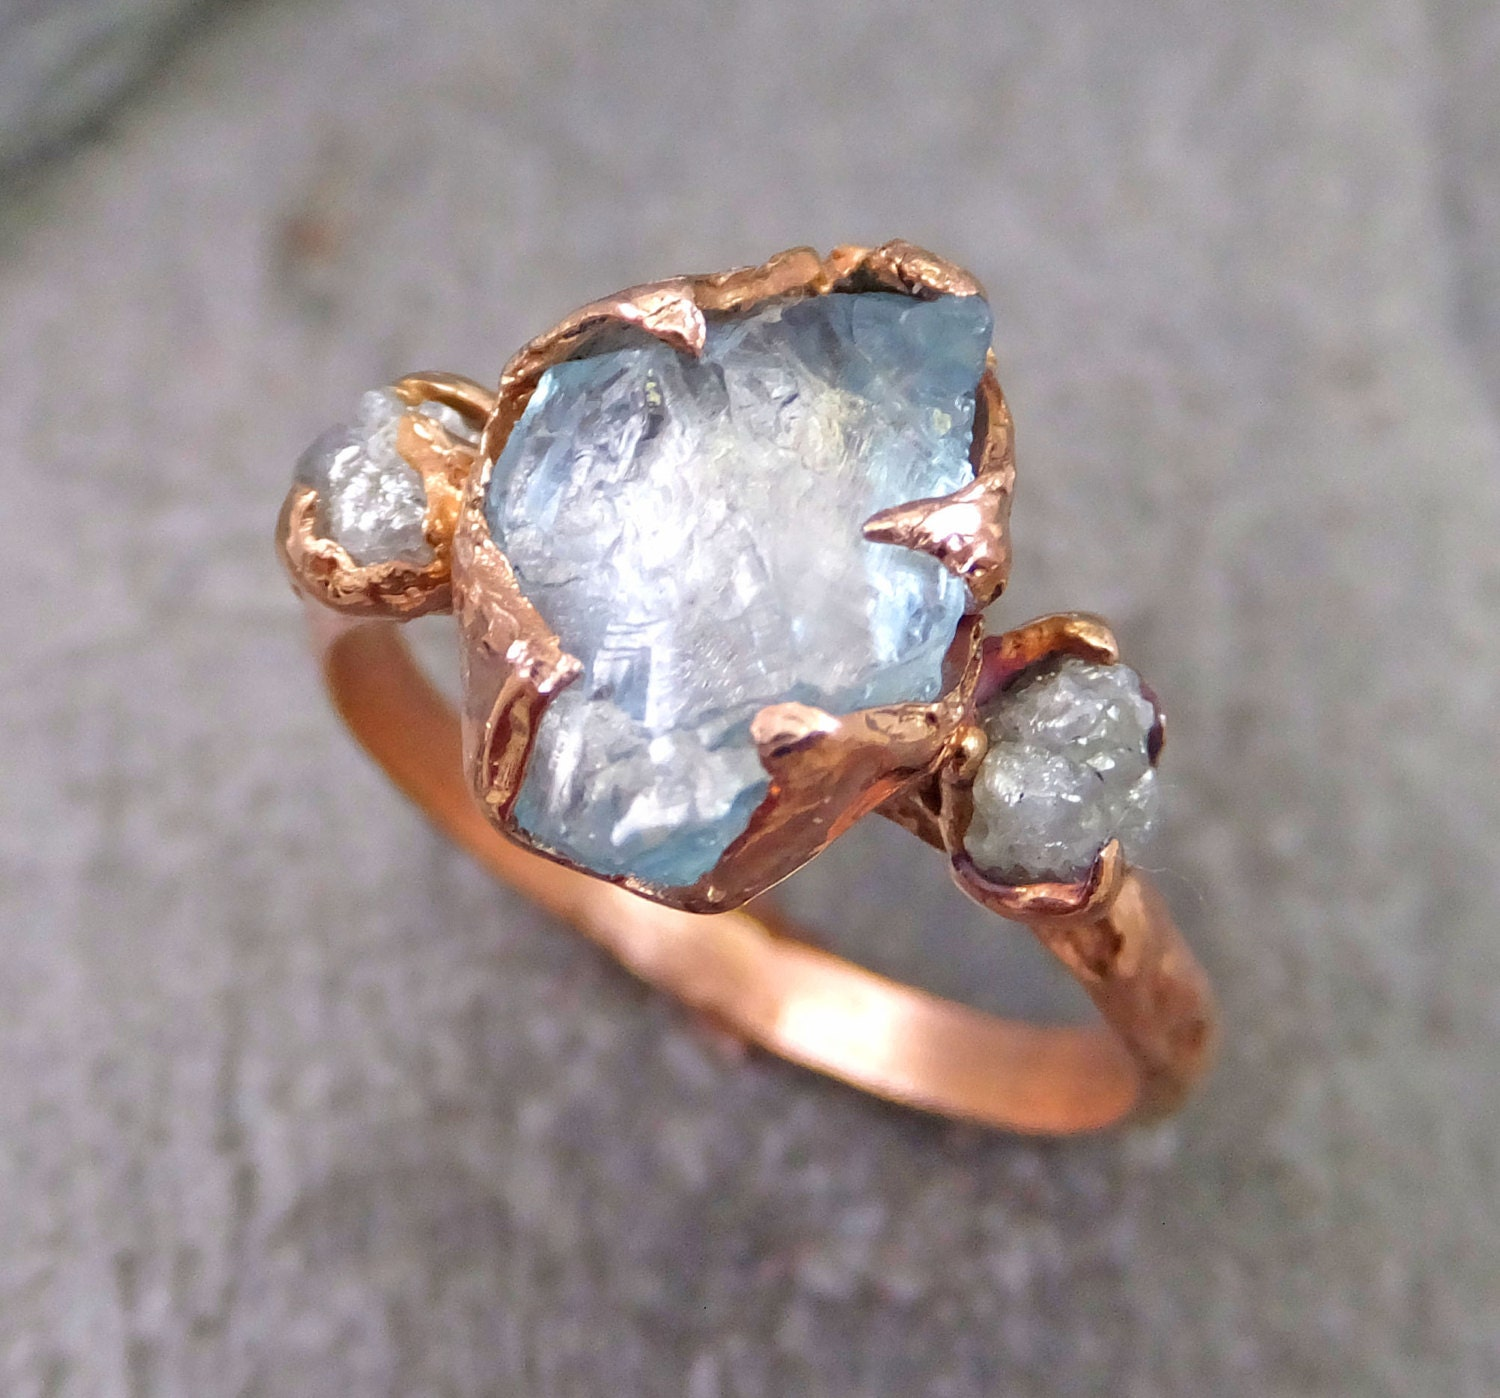 Raw Uncut Aquamarine Diamond Rose Gold Engagement Ring Wedding. Historical Engagement Rings. Scar Rings. Diamond Indian Wedding Rings. Profile Engagement Rings. Blue Color Rings. Natural Blue Diamond Wedding Rings. Initial Wedding Rings. Amethyst Side Stone Wedding Rings